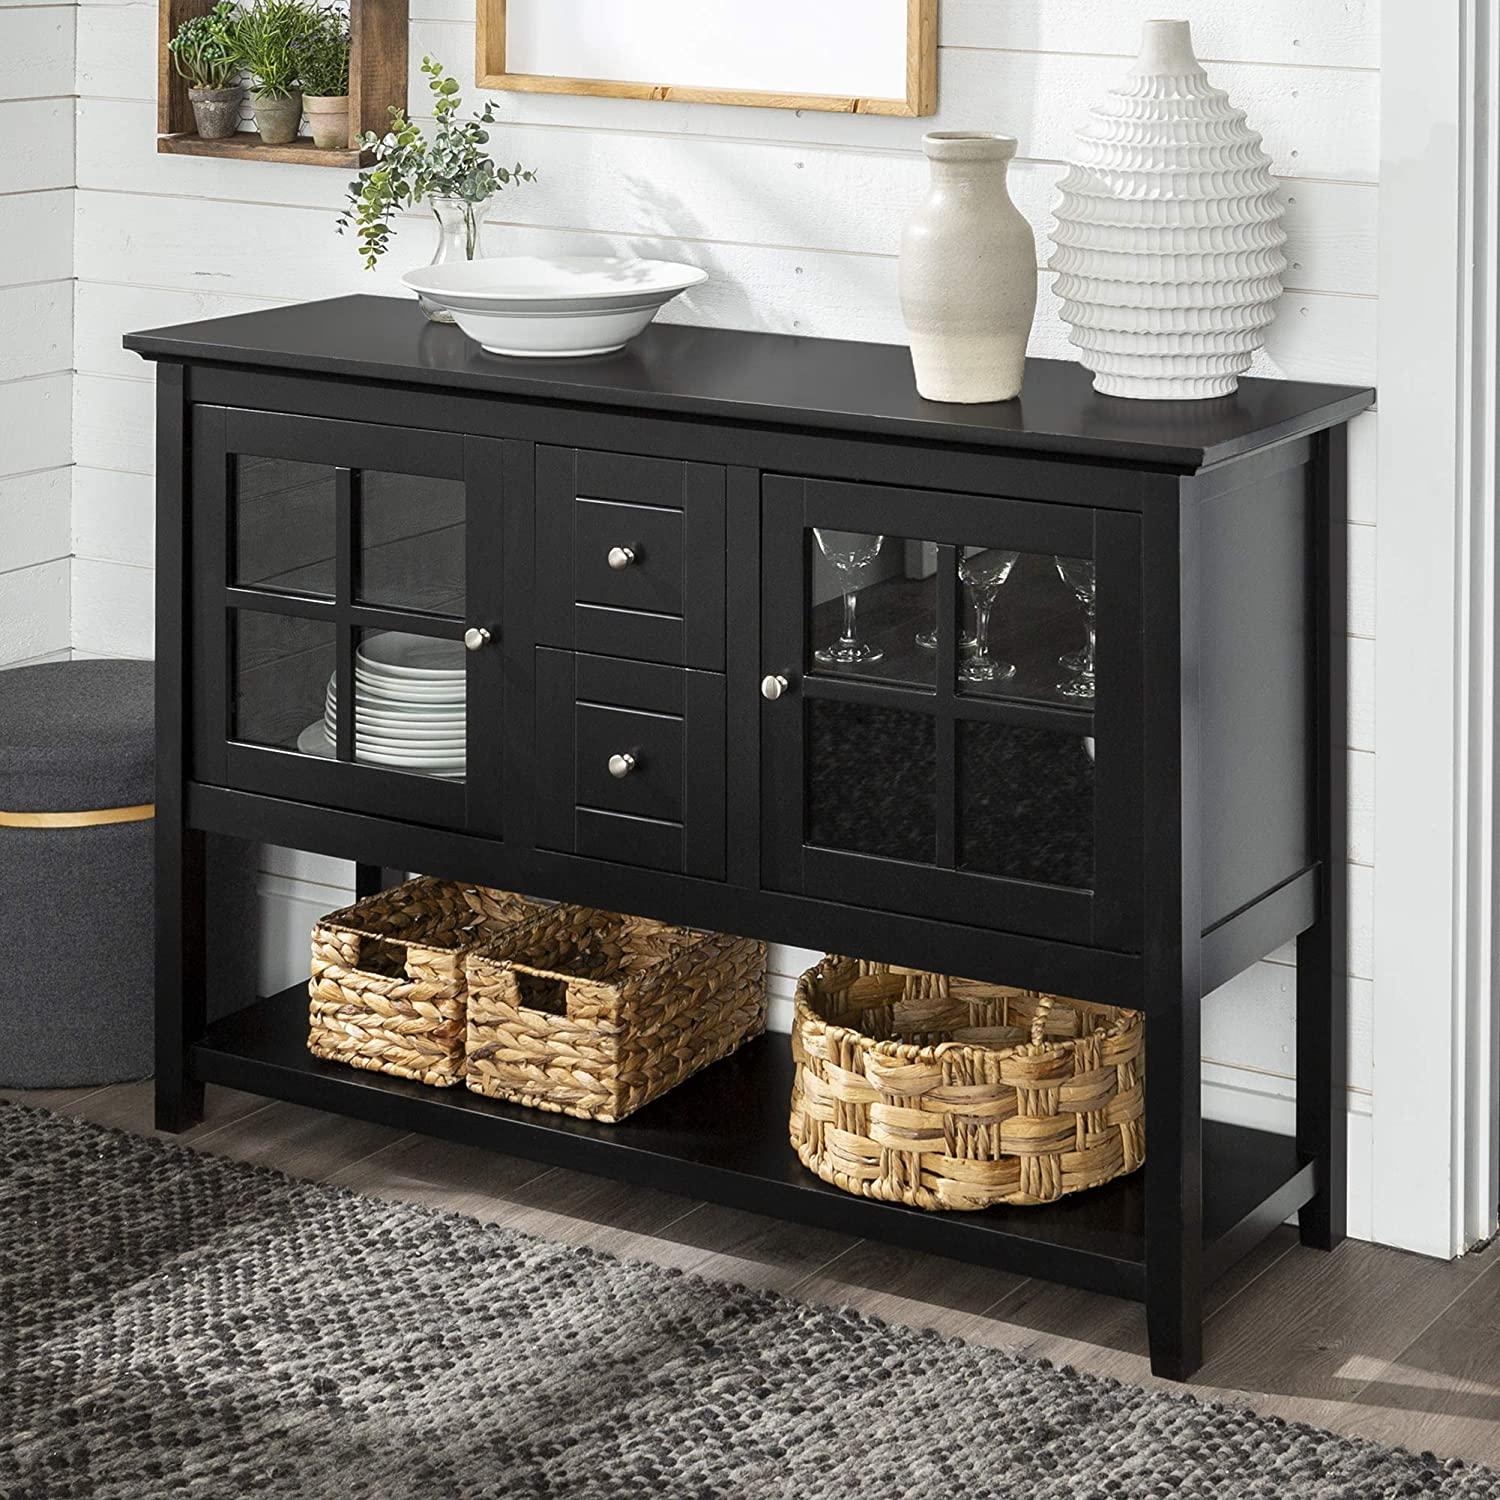 WE Furniture Rustic Farmhouse Wood Buffet